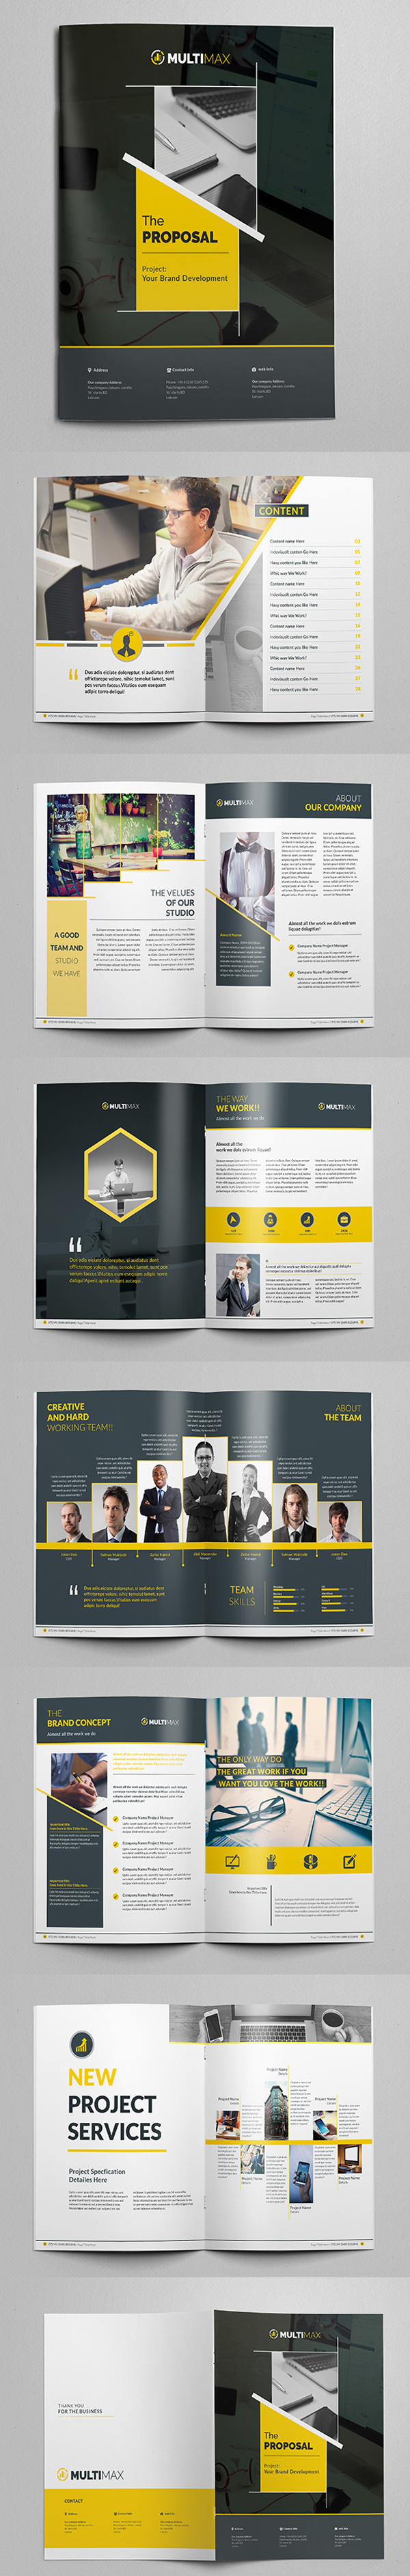 Modern Business Proposal Brochure / Category Design